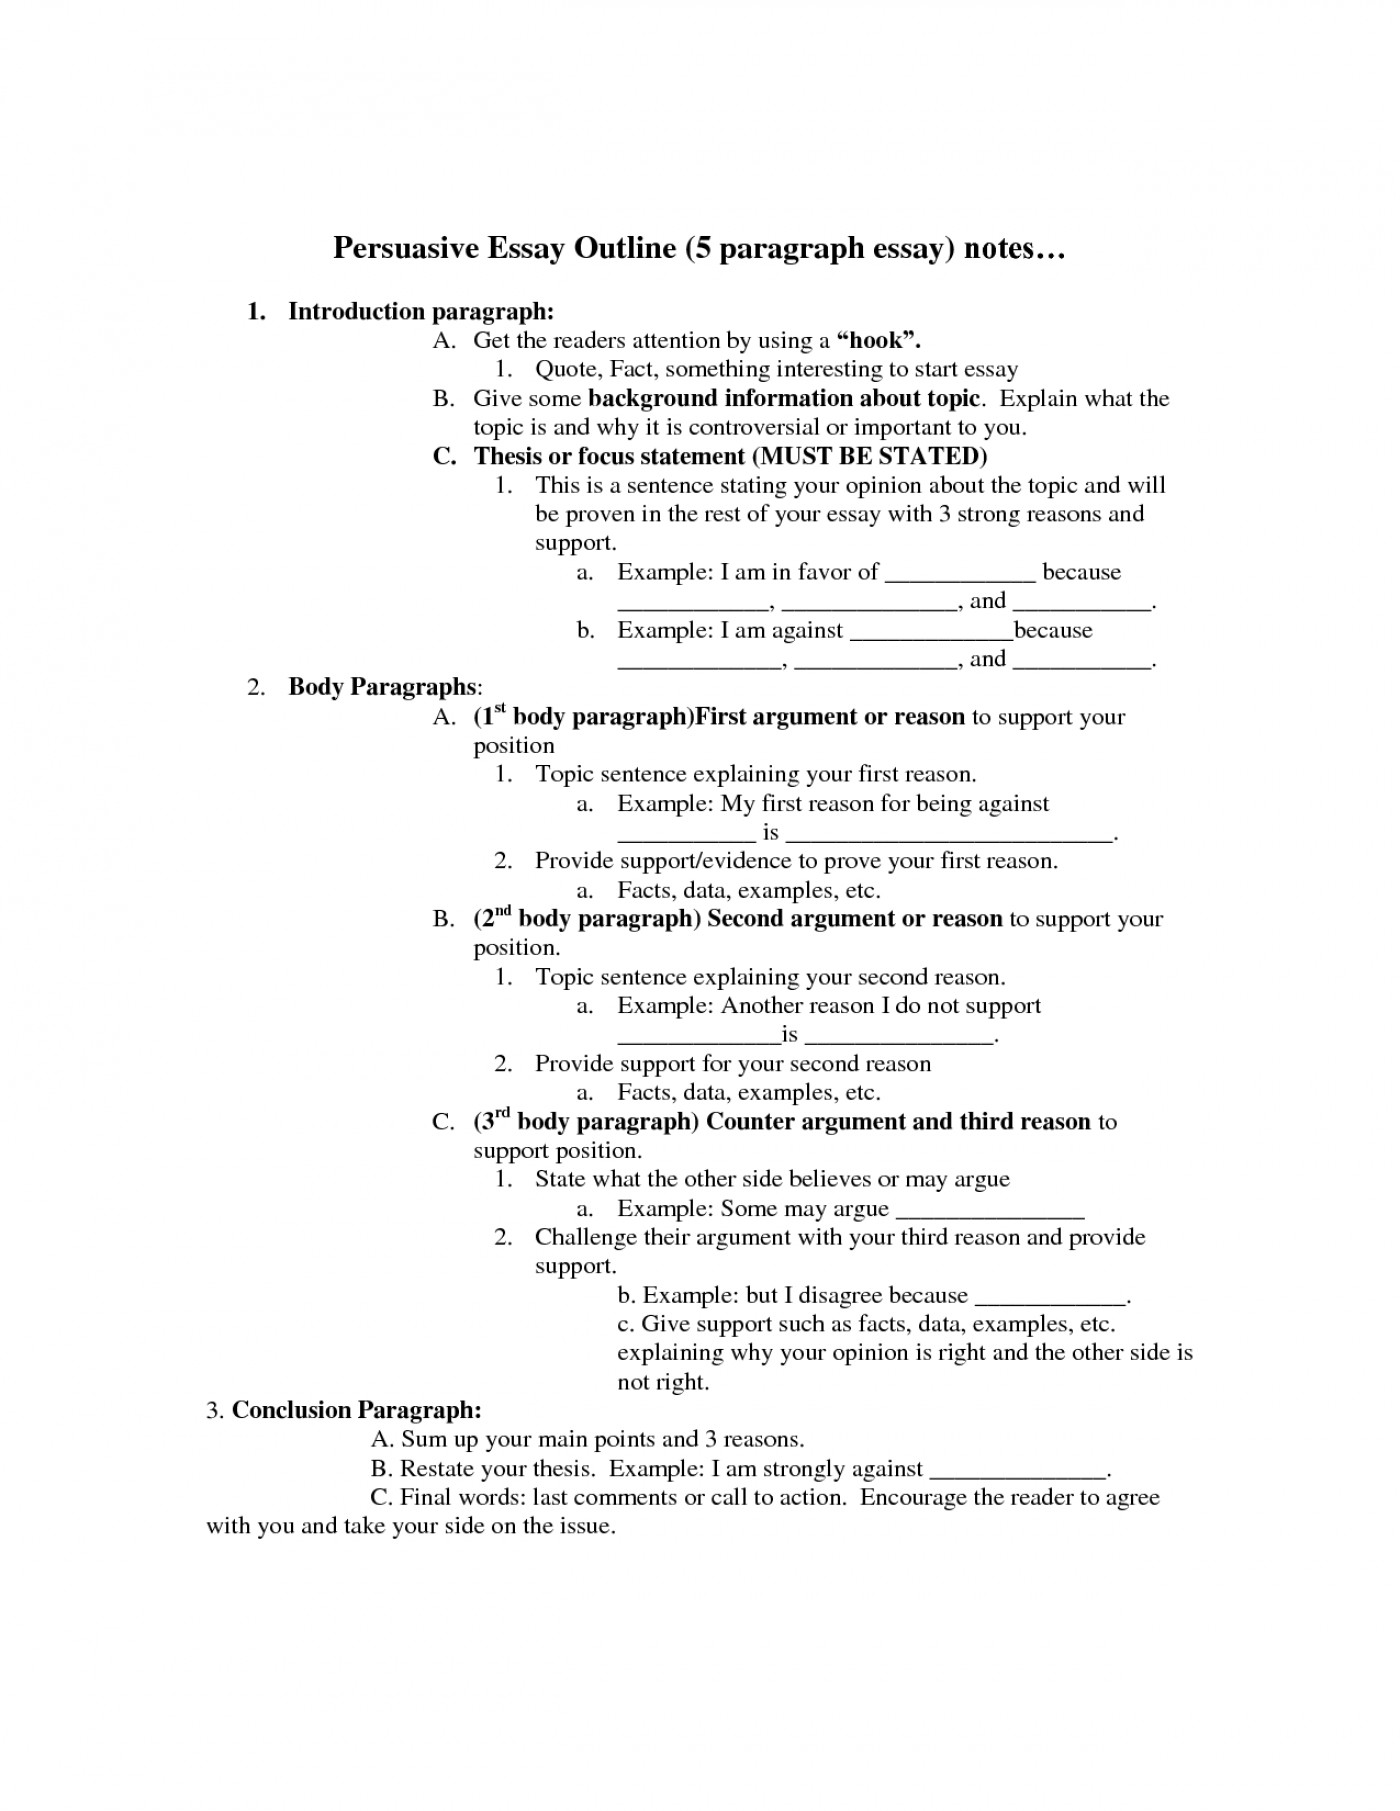 006 Persuasive Essay Outline Unbelievable Doc Template Middle School Pdf 1400